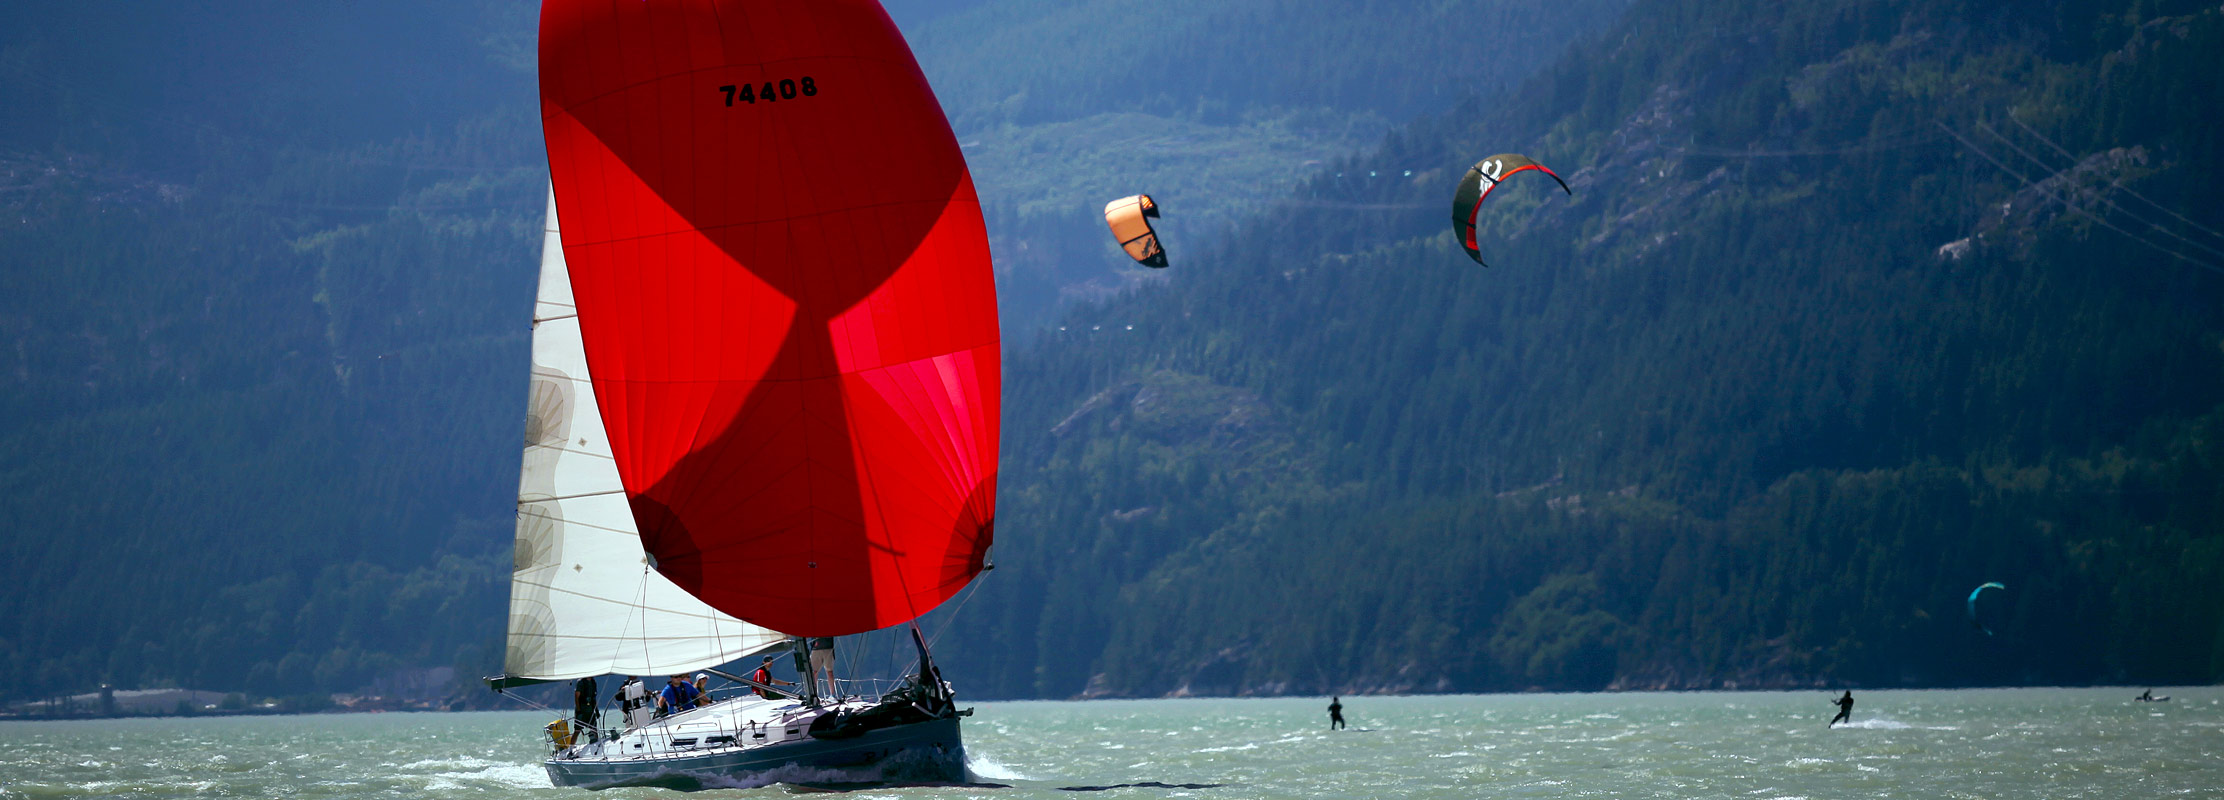 Sailing in Squamish BC with Kiteboarders